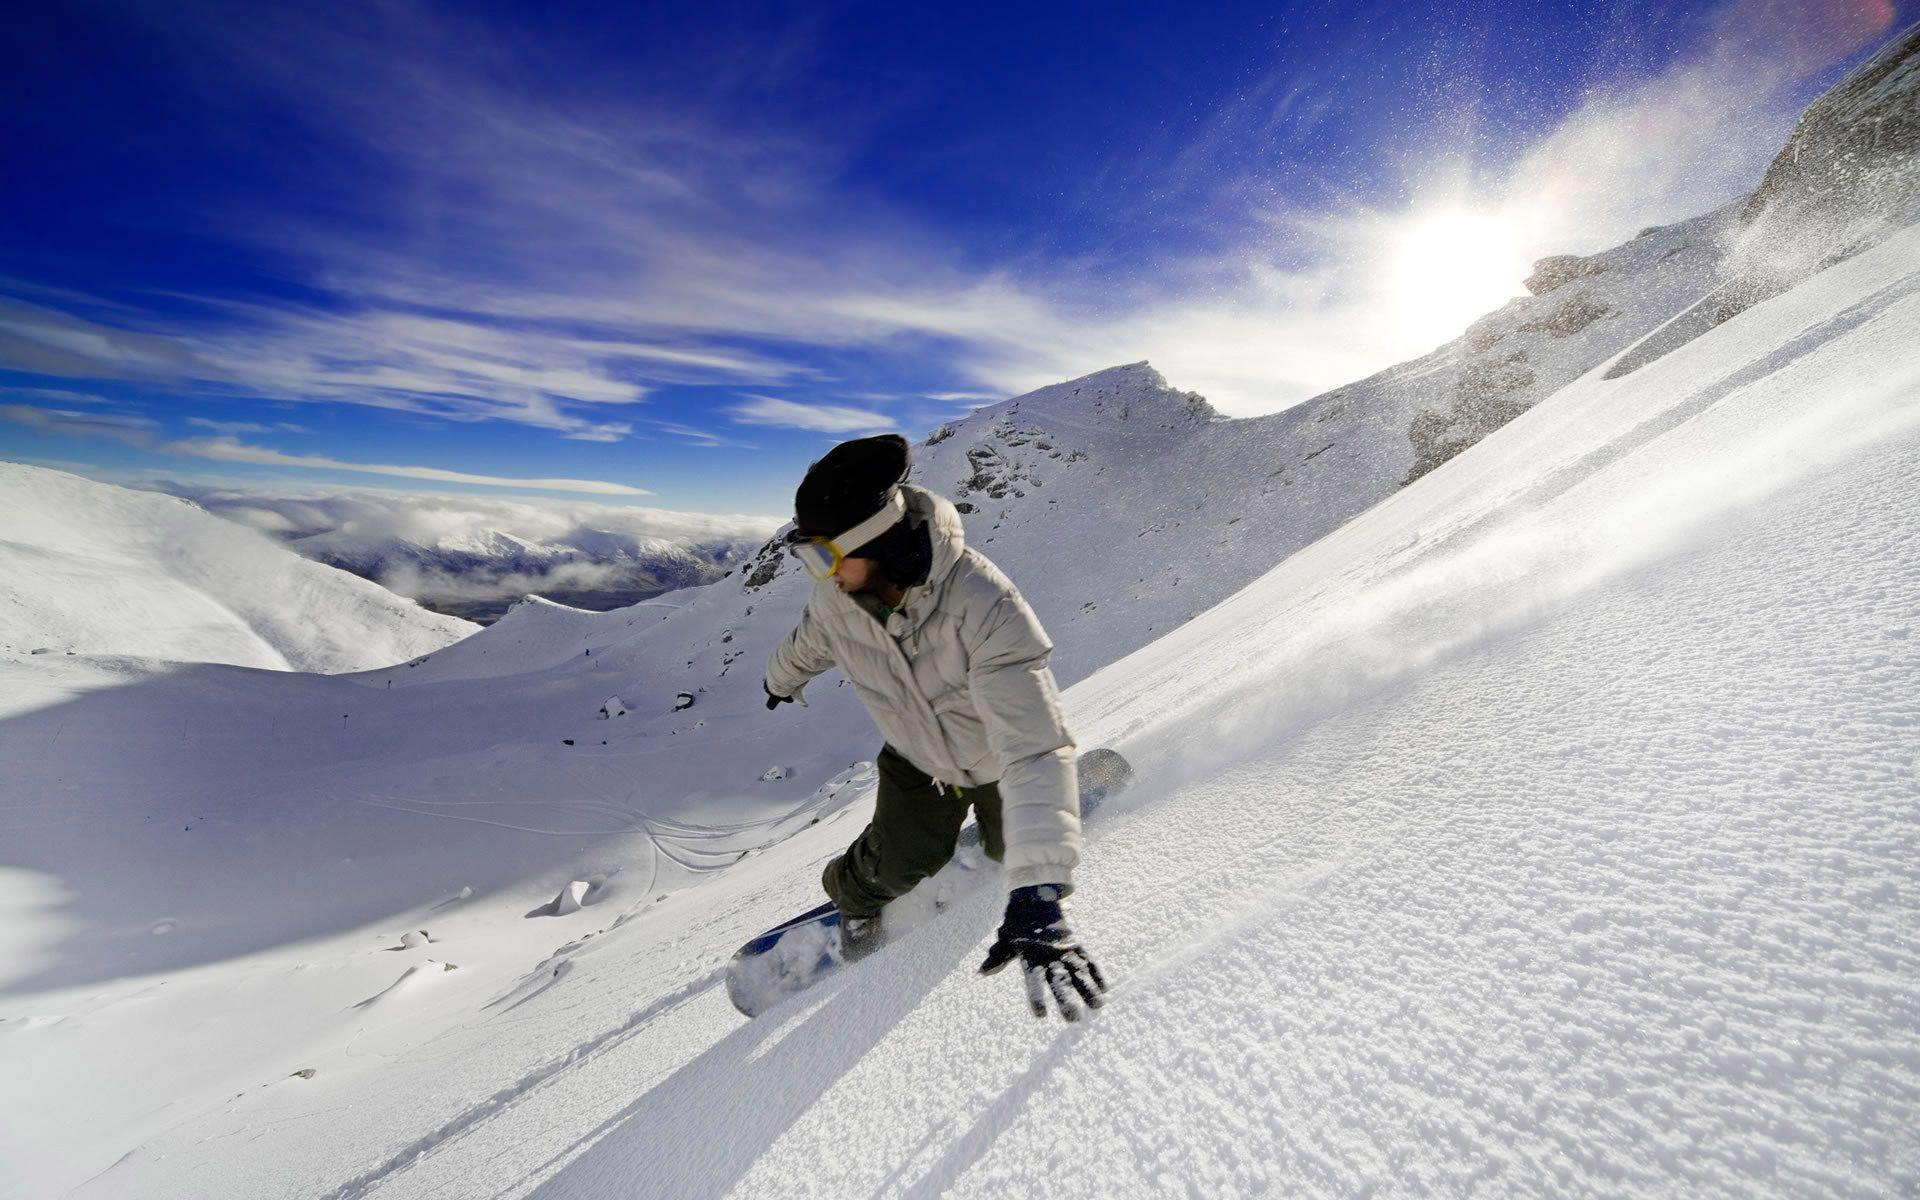 snowboarding wallpapers hd wallpaper cave